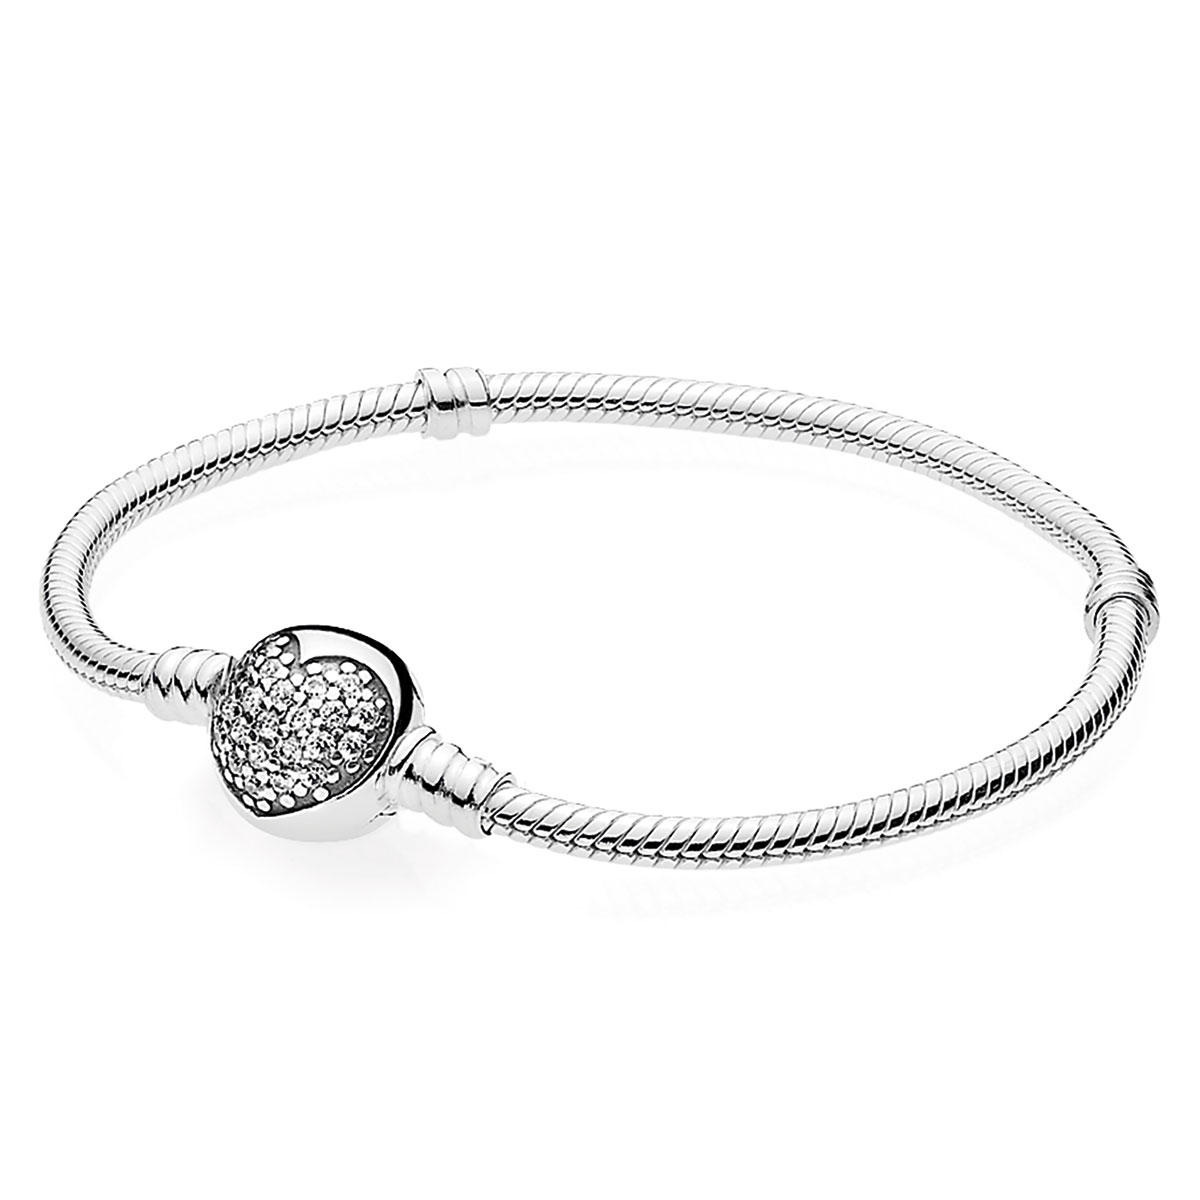 the chain stainless by pin learn visiting pandora image treasures charm bracelet snake anklet more fits timeline link jewellery cm steel women for